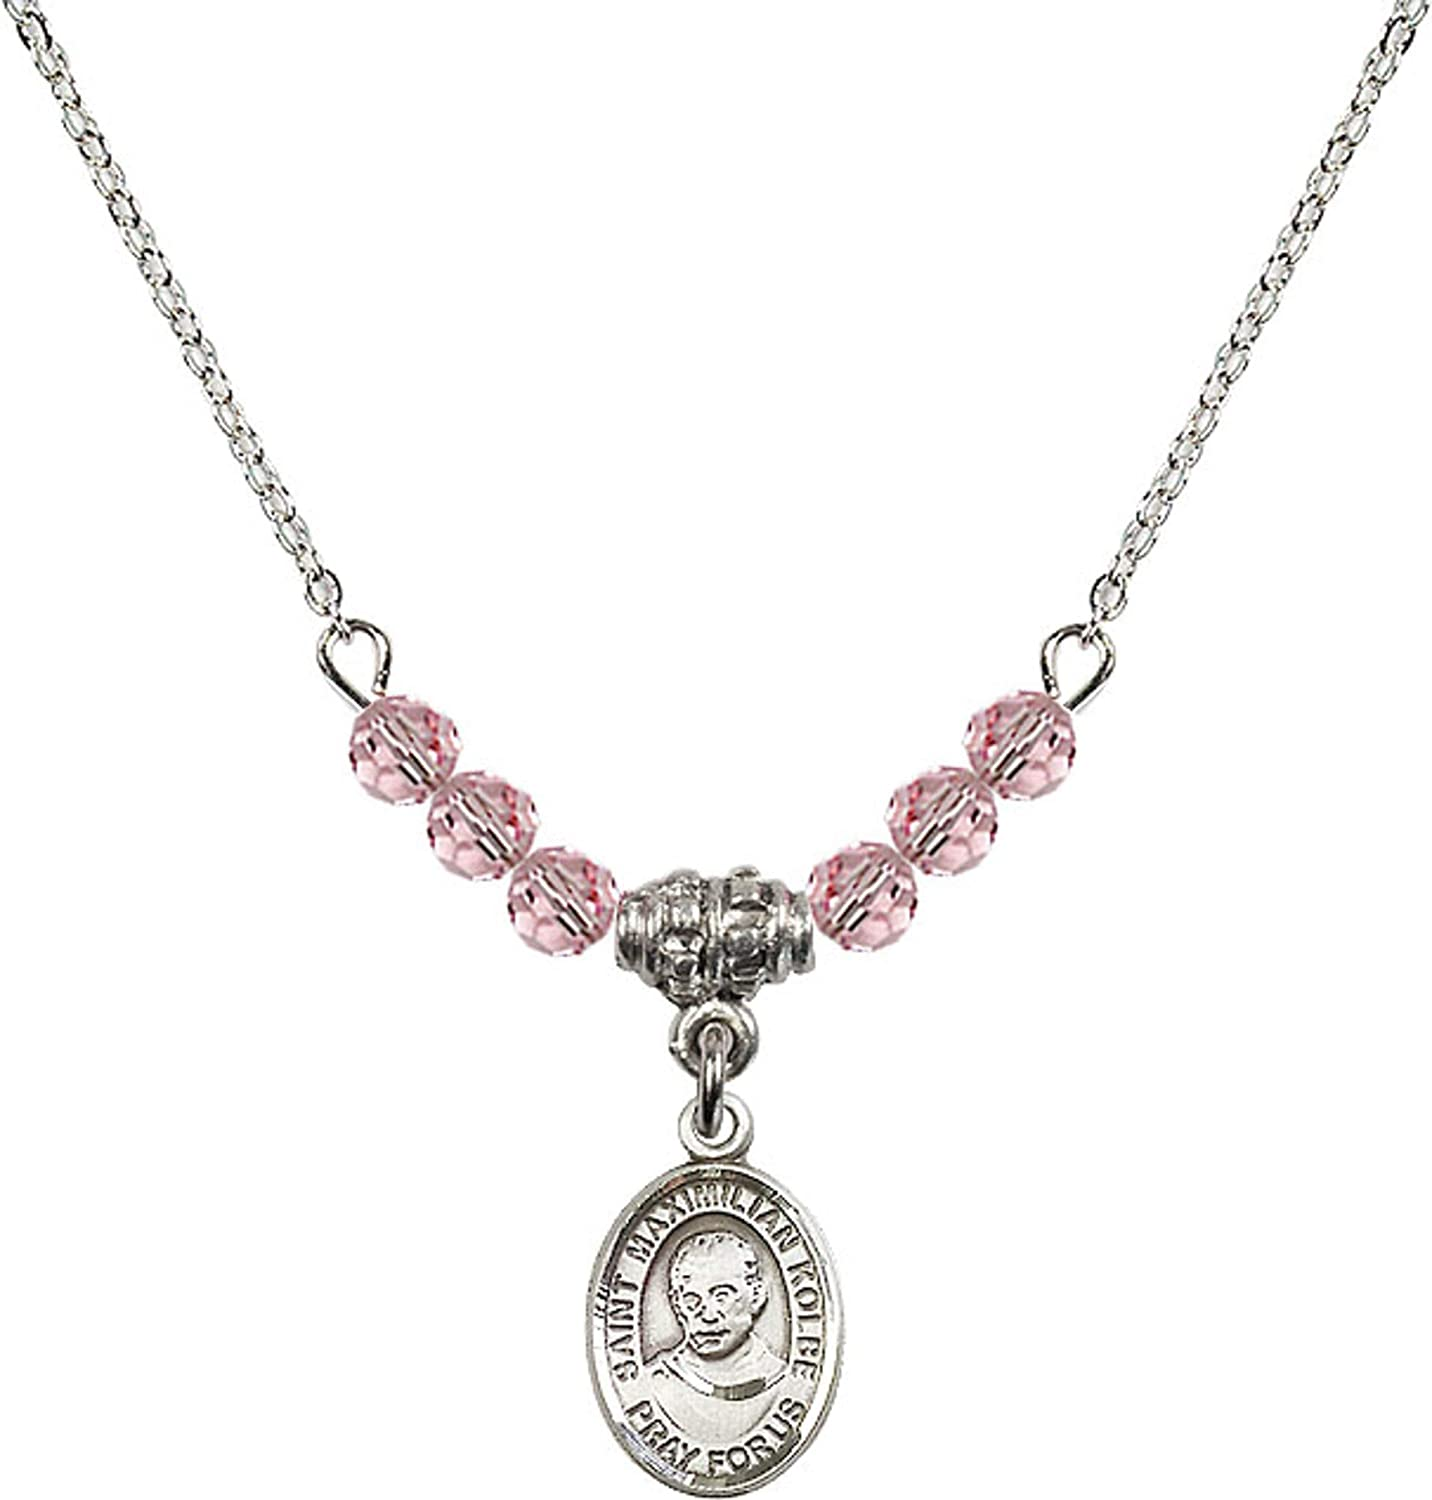 Bonyak Jewelry 18 Inch Rhodium Plated Necklace w// 4mm Light Rose Pink October Birth Month Stone Beads and Saint Maximilian Kolbe Charm